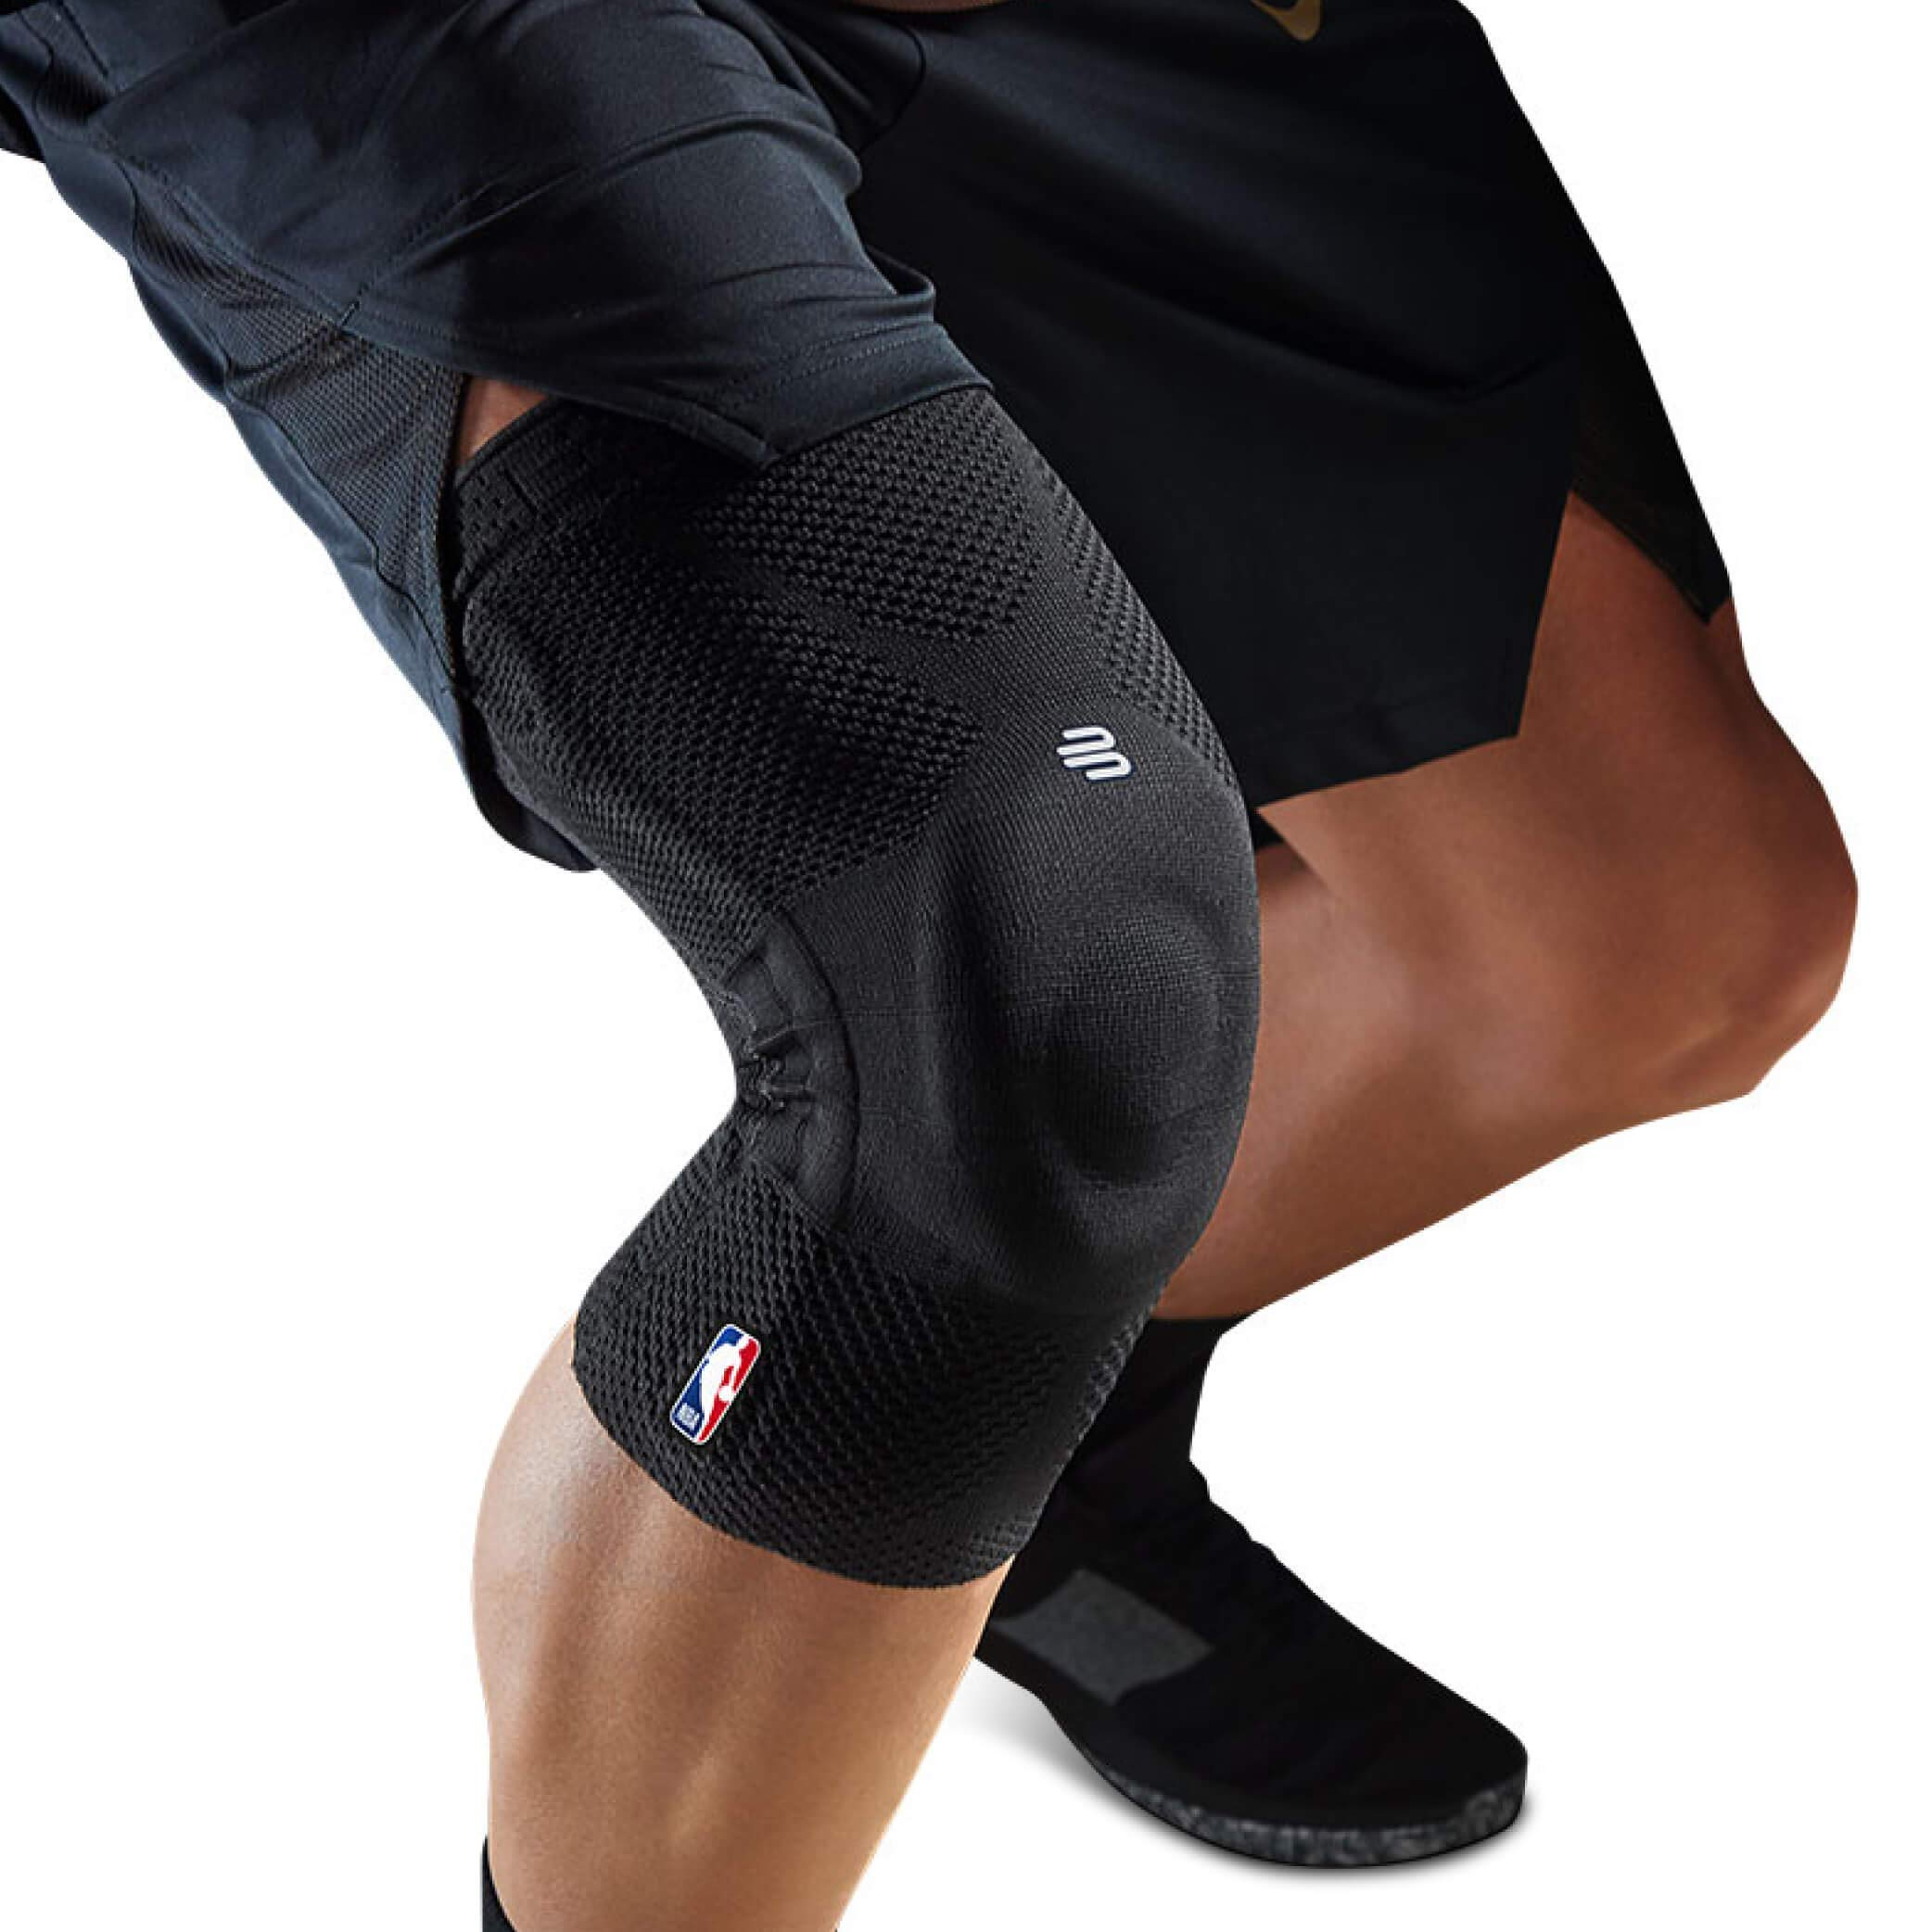 Bauerfeind GenuTrain NBA Knee Brace - Basketball Support with Medical Compression - Sleeve Design with Patella Pad Gel Ring for Pain Relief & Stabilization (Black, L)